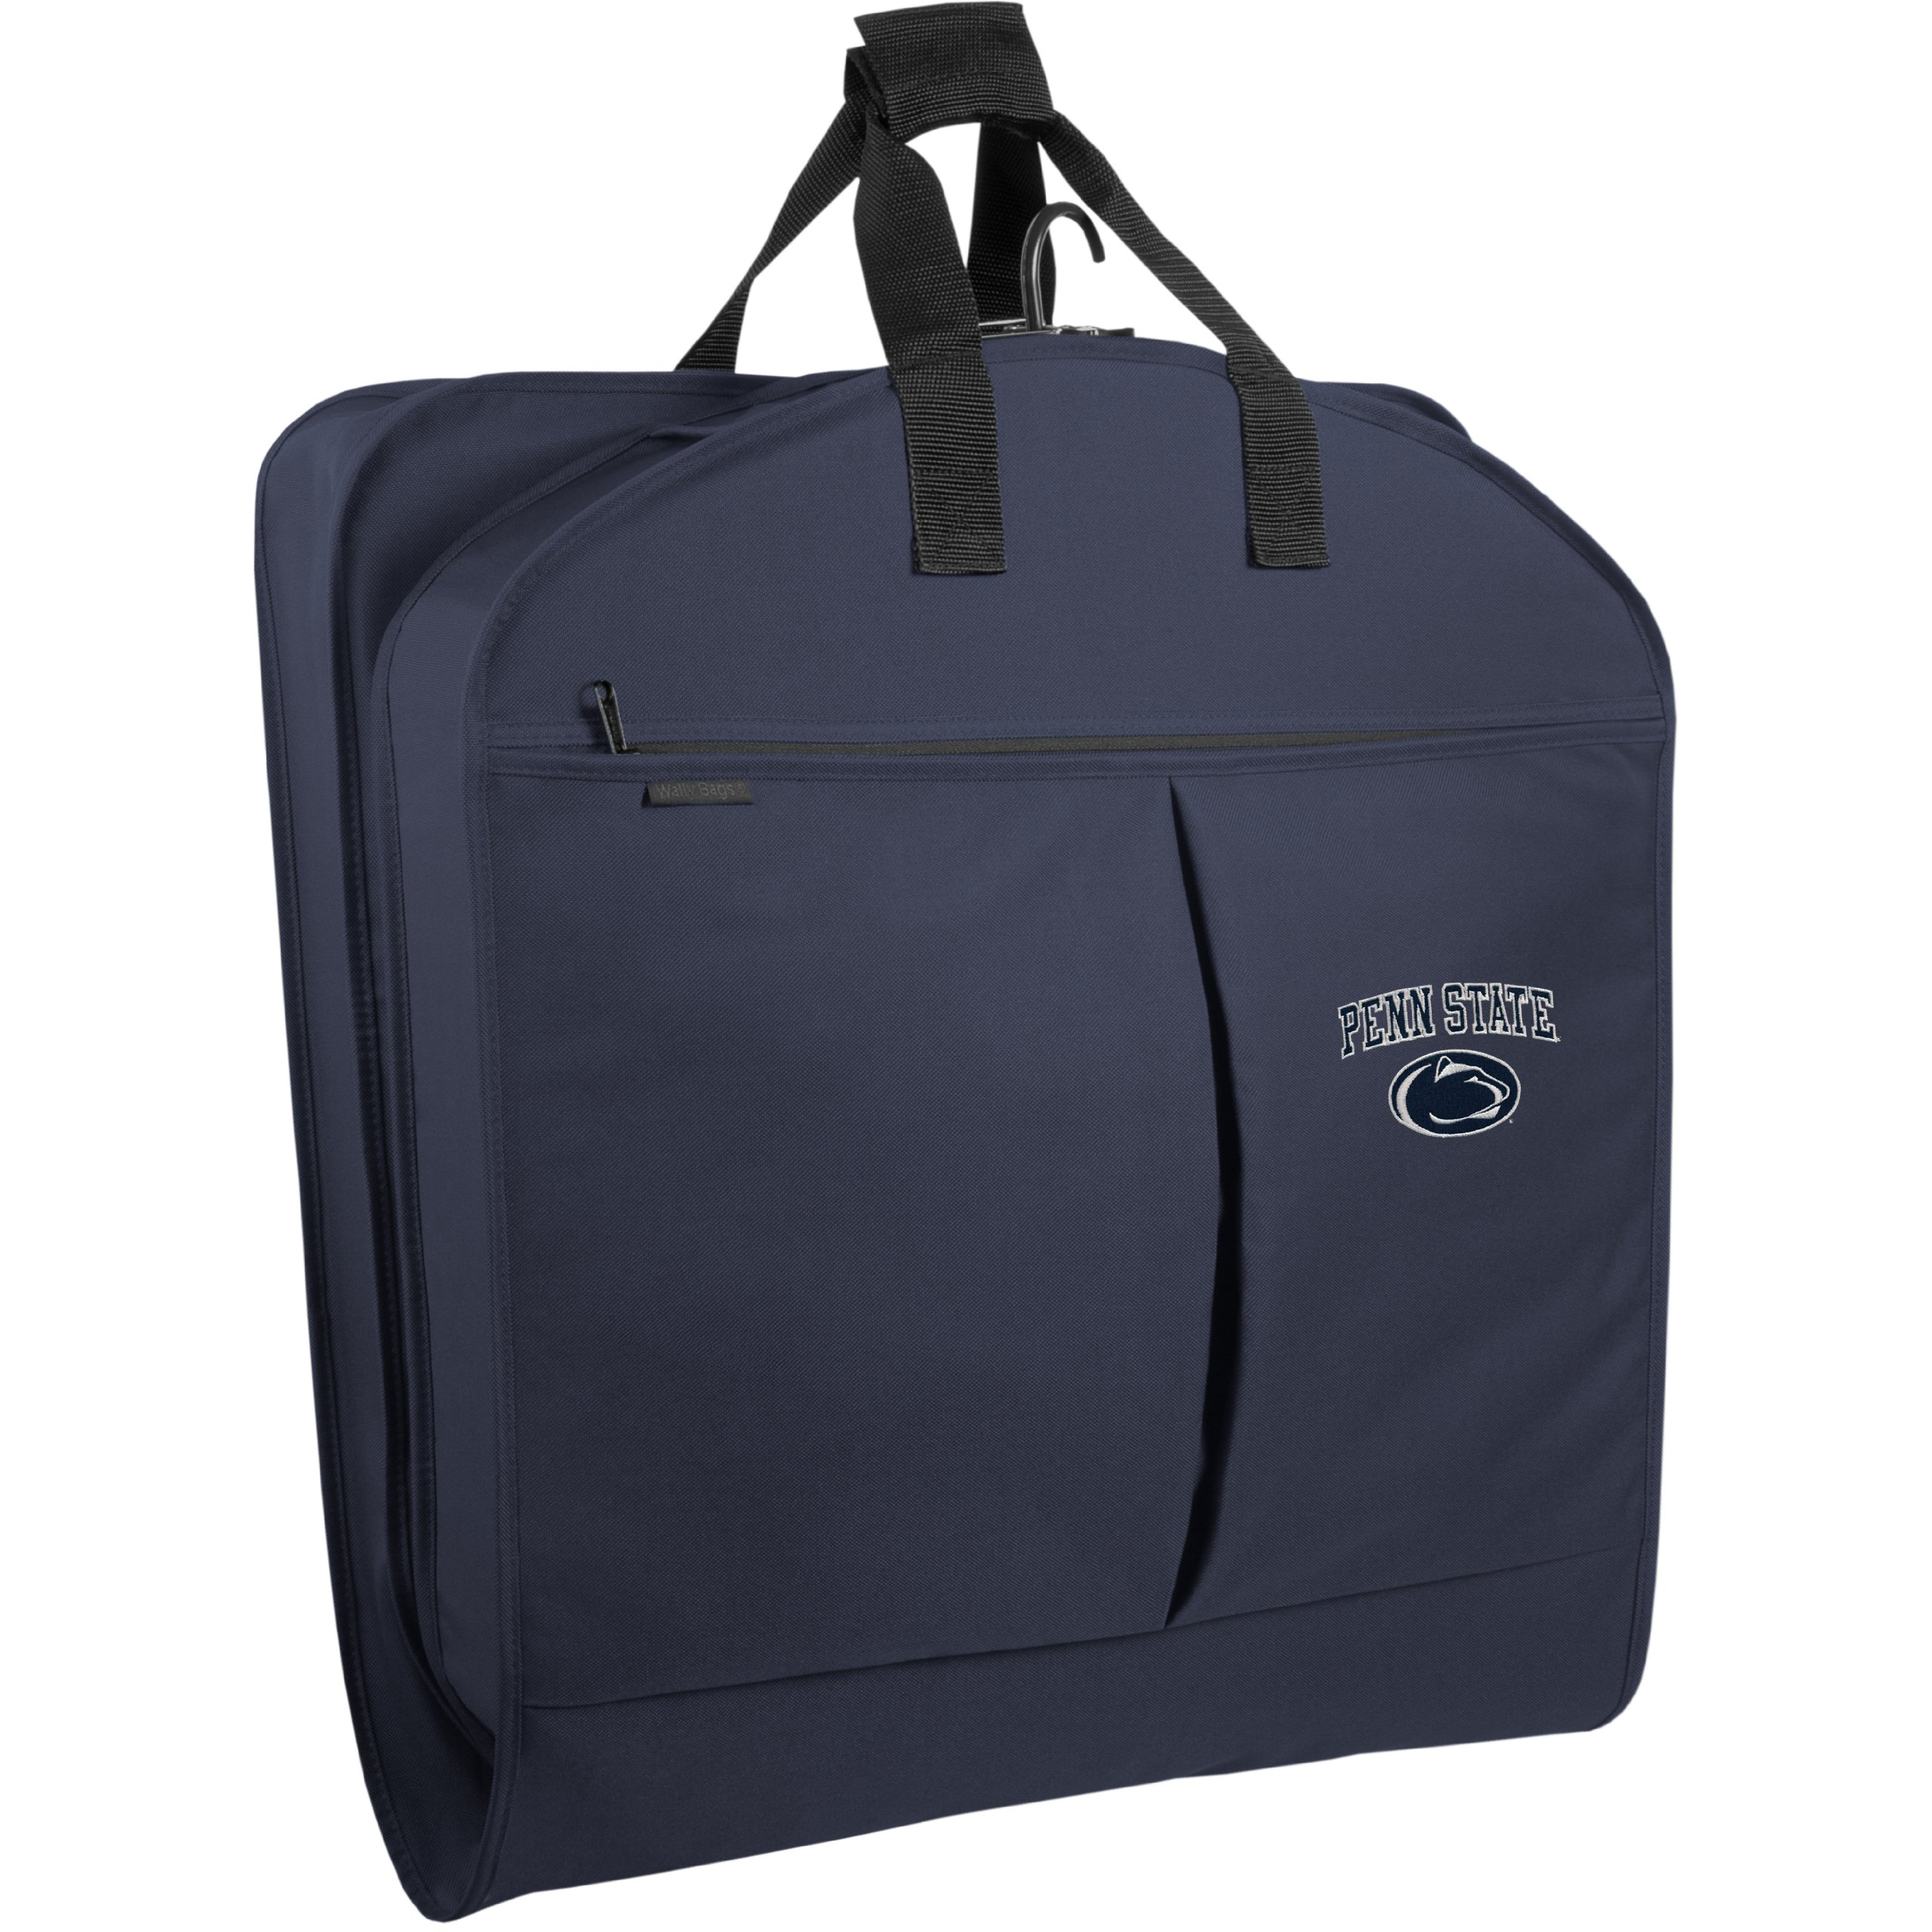 WallyBags Penn State Nittany Lions 40 Inch Suit Length Garment Bag with Pockets, Navy, One Size